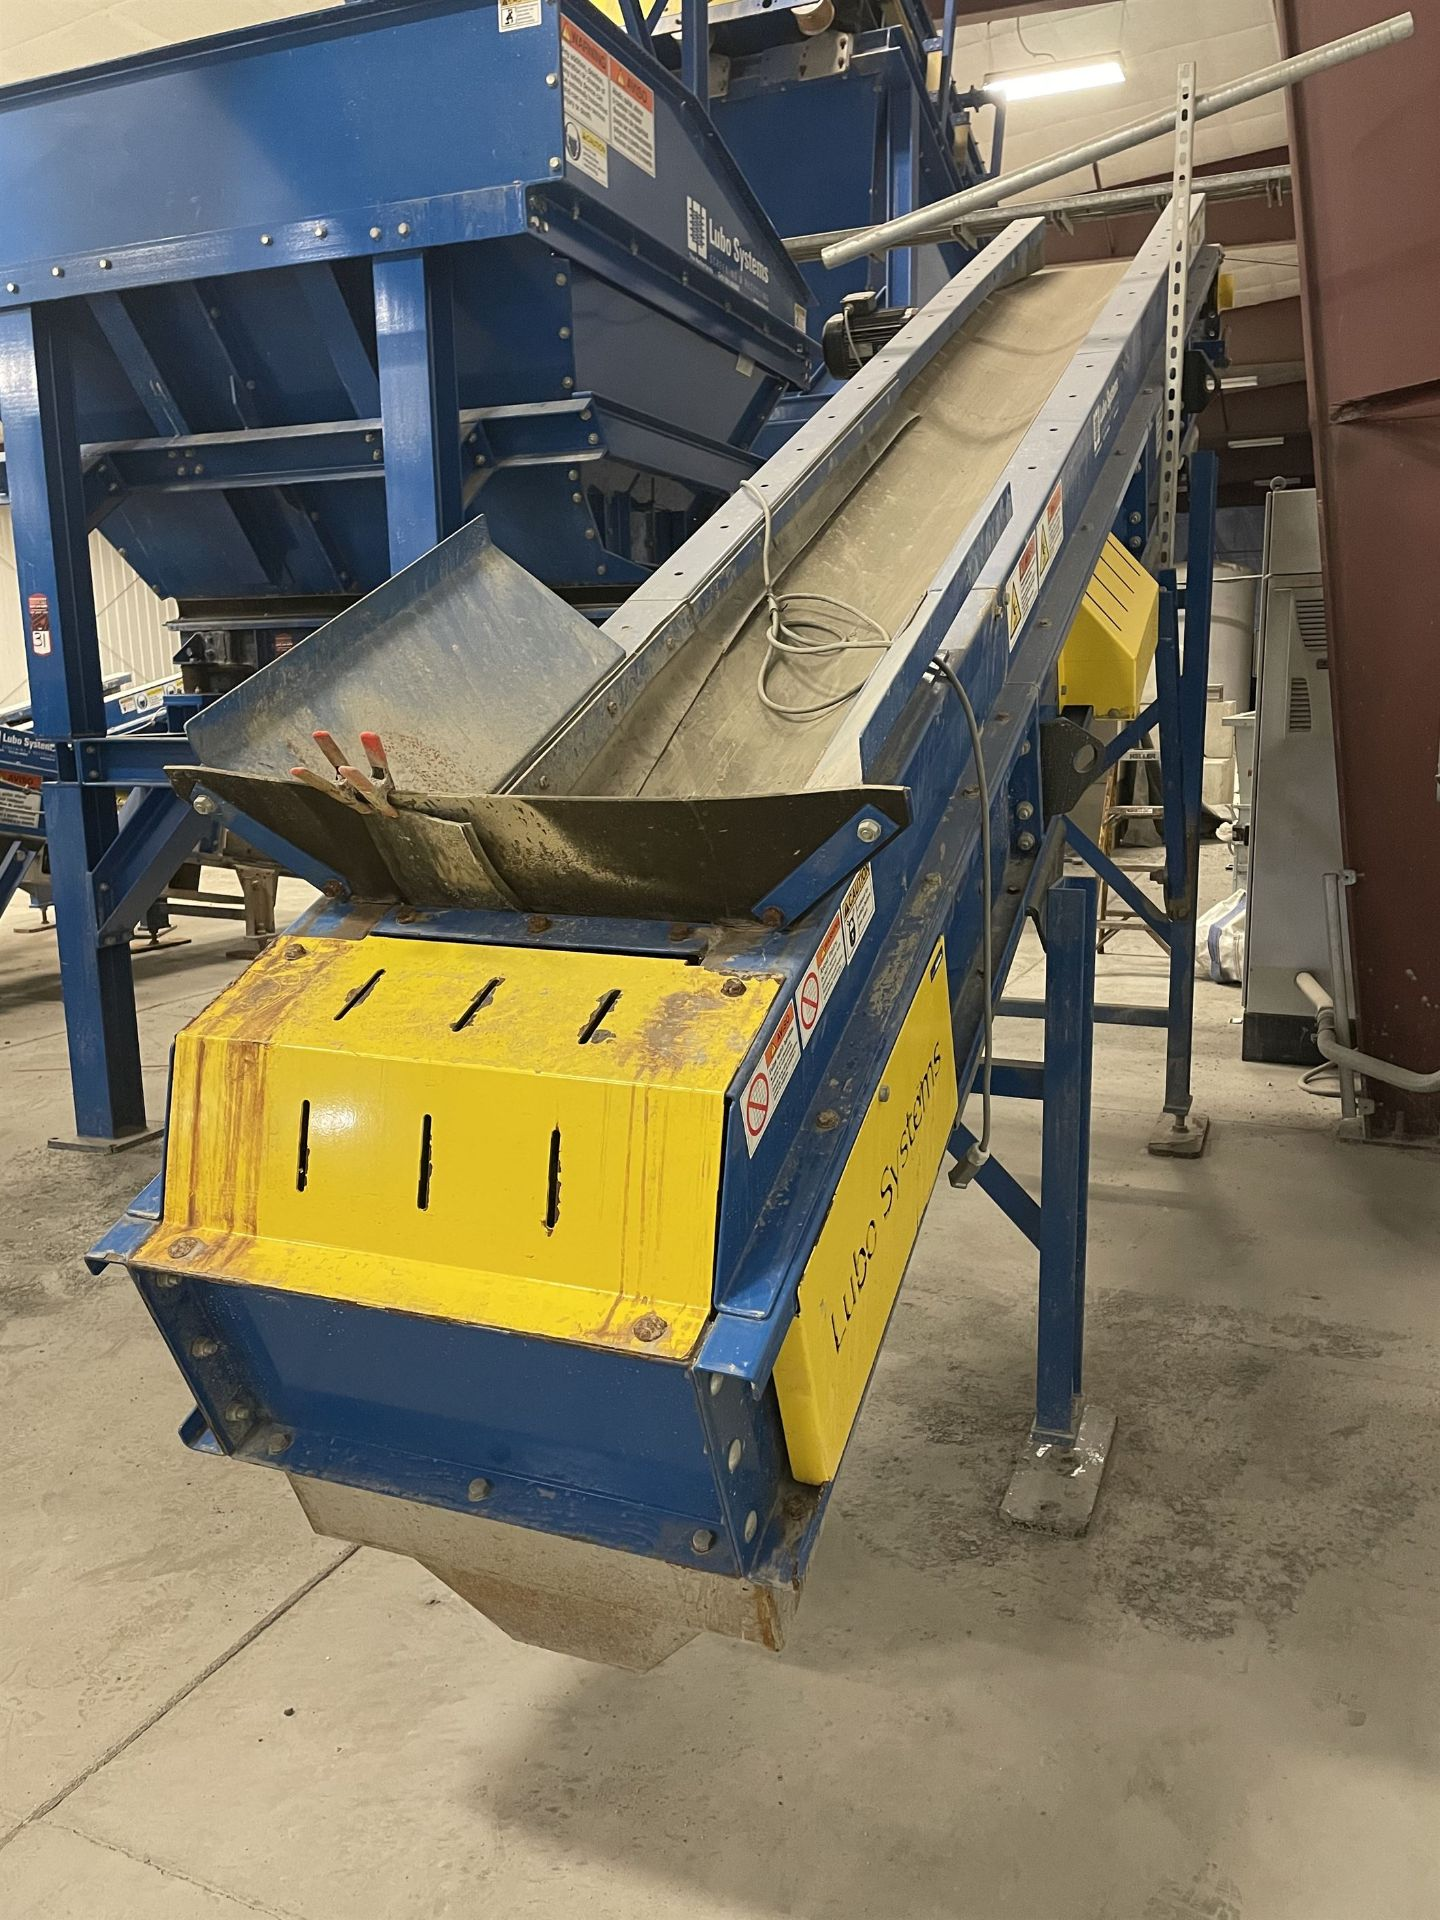 2015 LUBO SYSTEMS TBL 600x4500 Inclined Belt Conveyor, s/n 800108-0230, 600mm x 4500mm, SEW 3.7 kW - Image 2 of 5